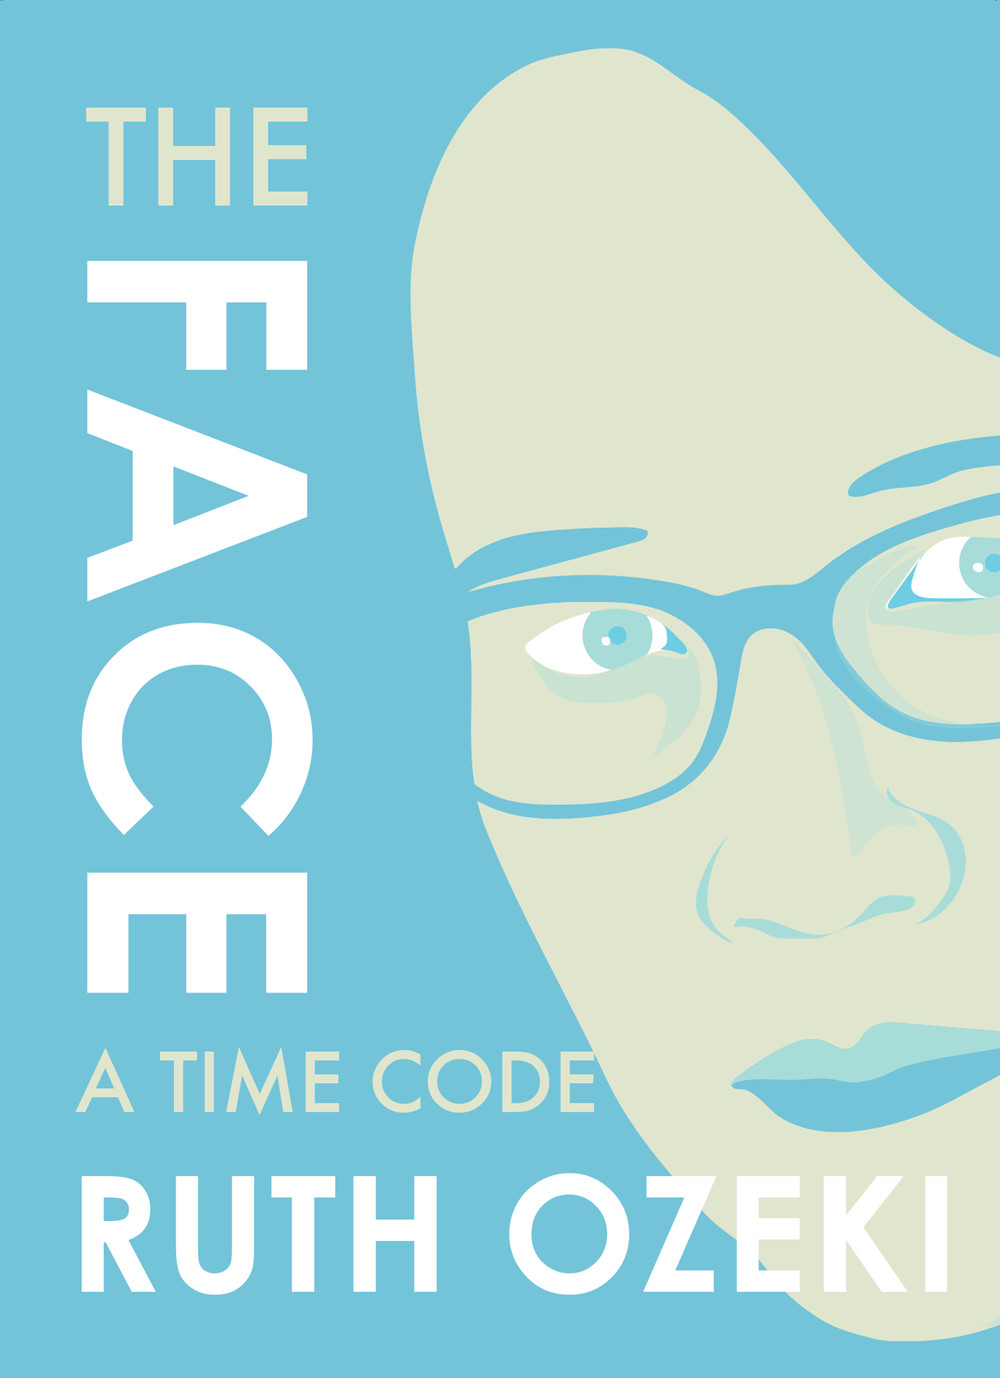 The+Face,+by+Ruth+Ozeki+-+9781632060525.jpg